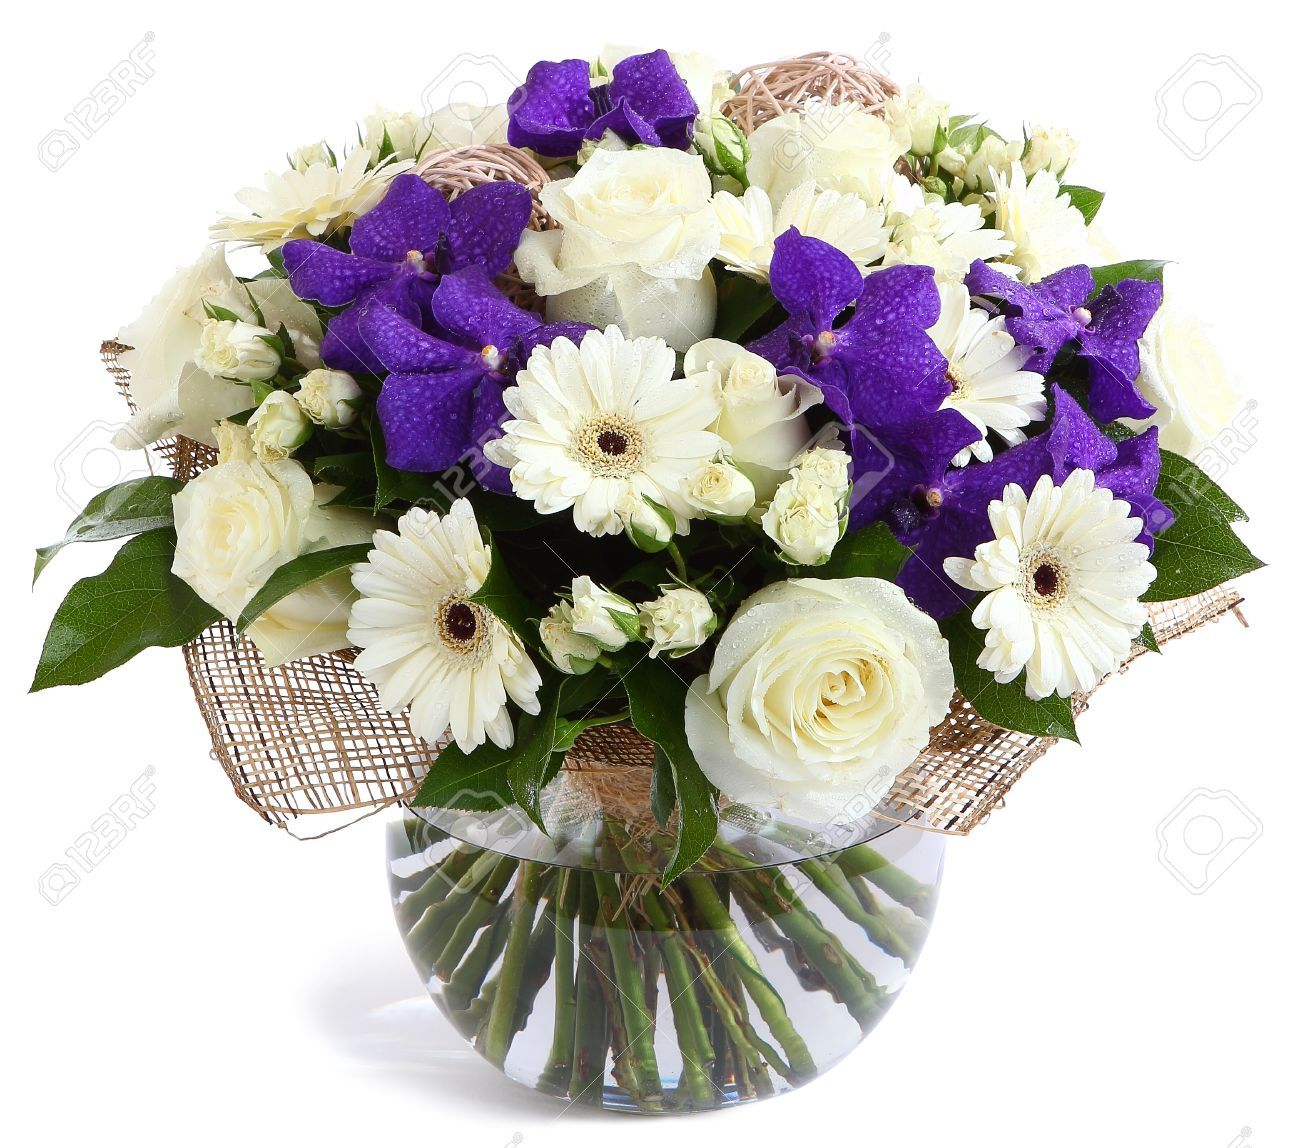 Online flower delivery in abu dhabi contact breeze love online flower delivery in abu dhabi contact breeze love flowers 0504300122 or salesbreezelovef breeze love flowers help you to mightylinksfo Images